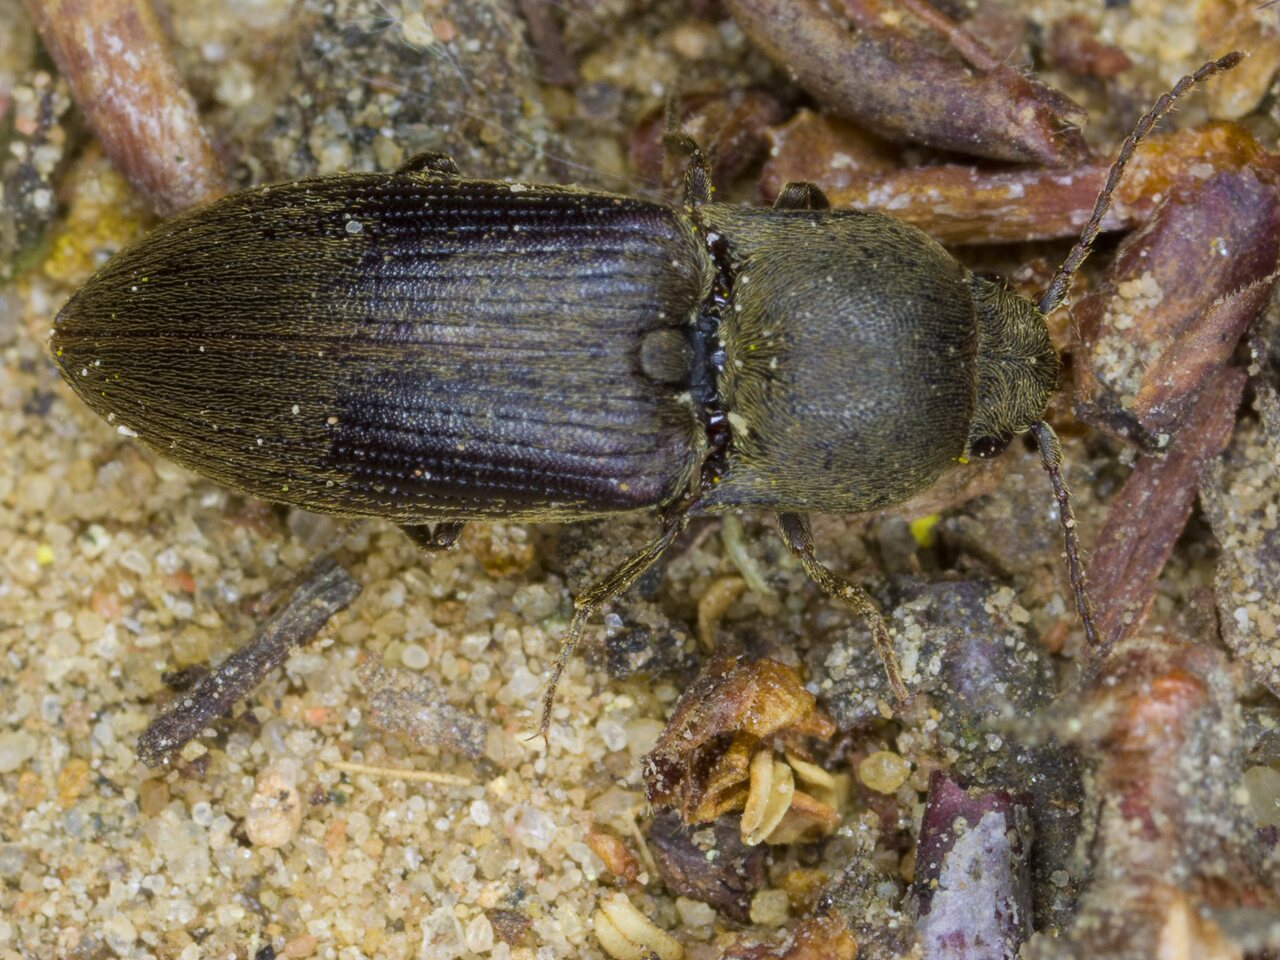 Agriotes-obscurus-3223.jpg